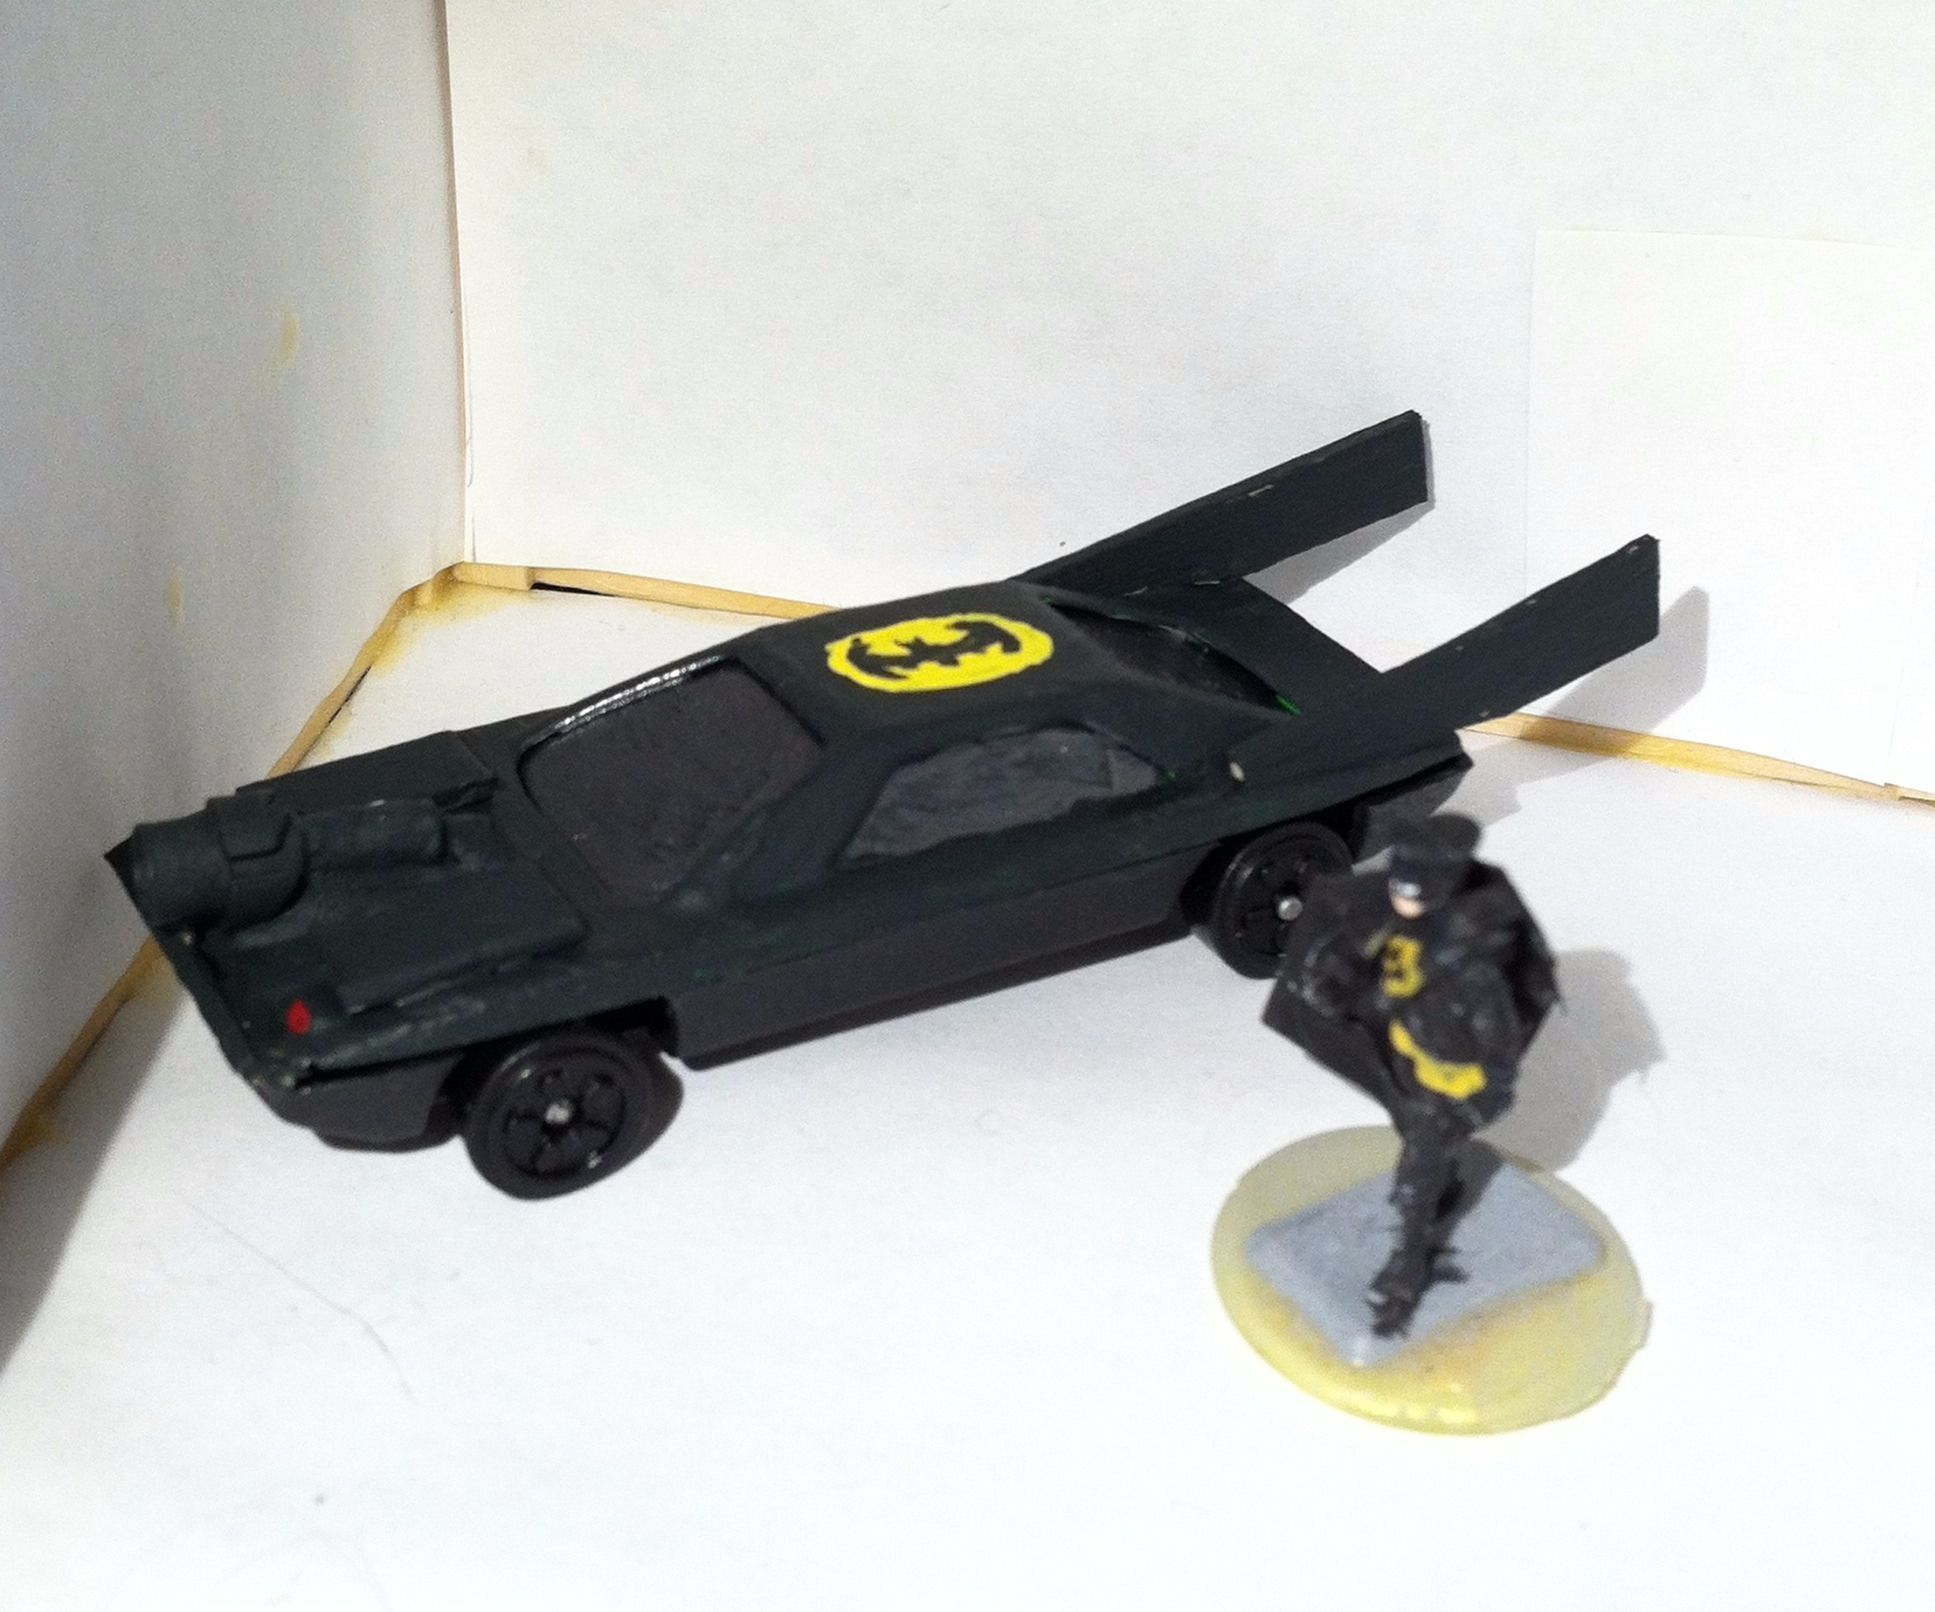 1/72 Scale Batmobile